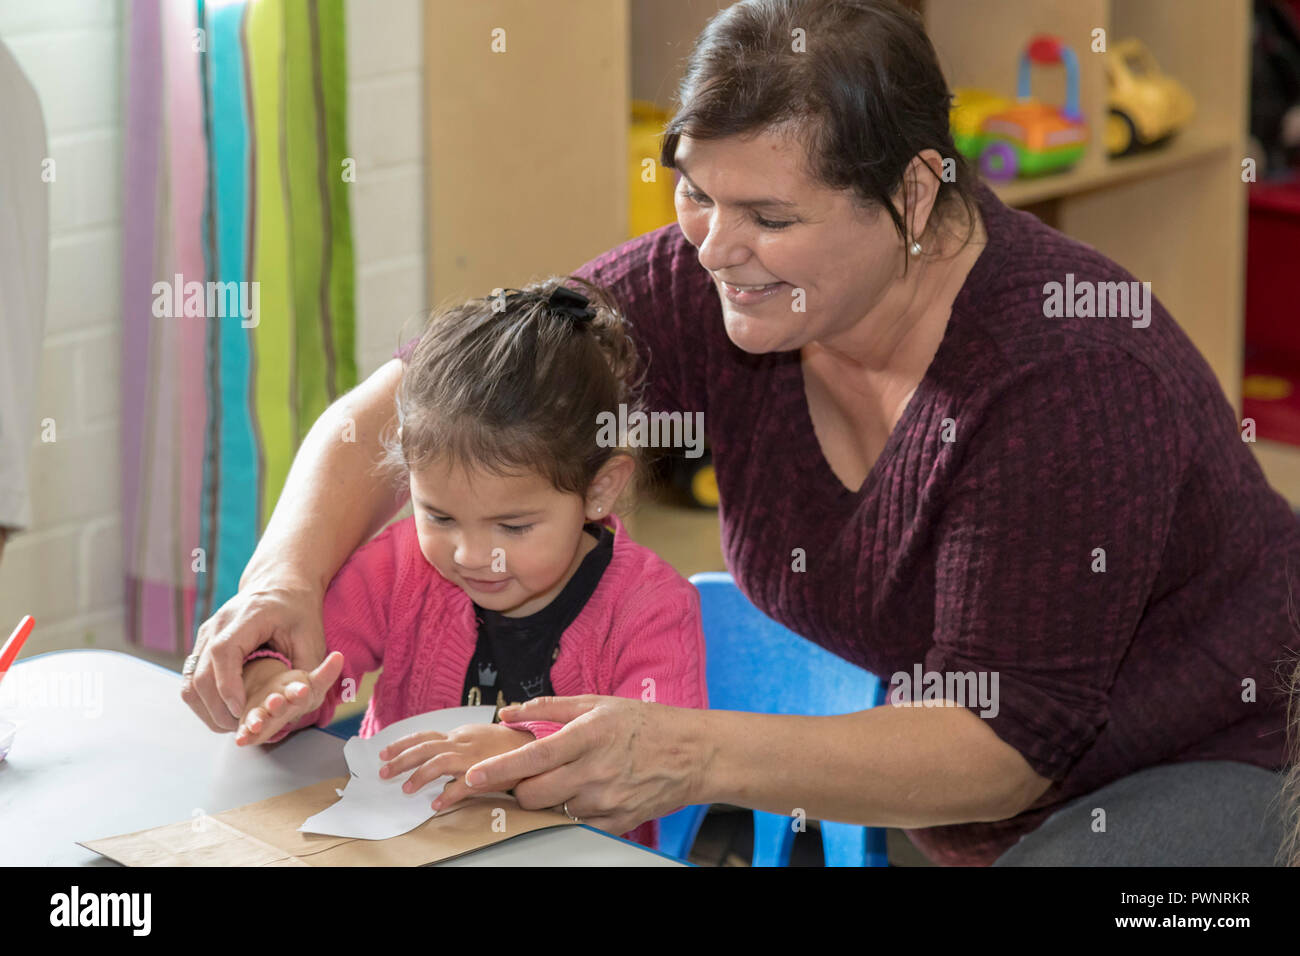 Alpine, Texas - Mari Rodriguez helps children with an art project in the two-year-olds classroom at the Alpine Community Center. The Center is a missi - Stock Image